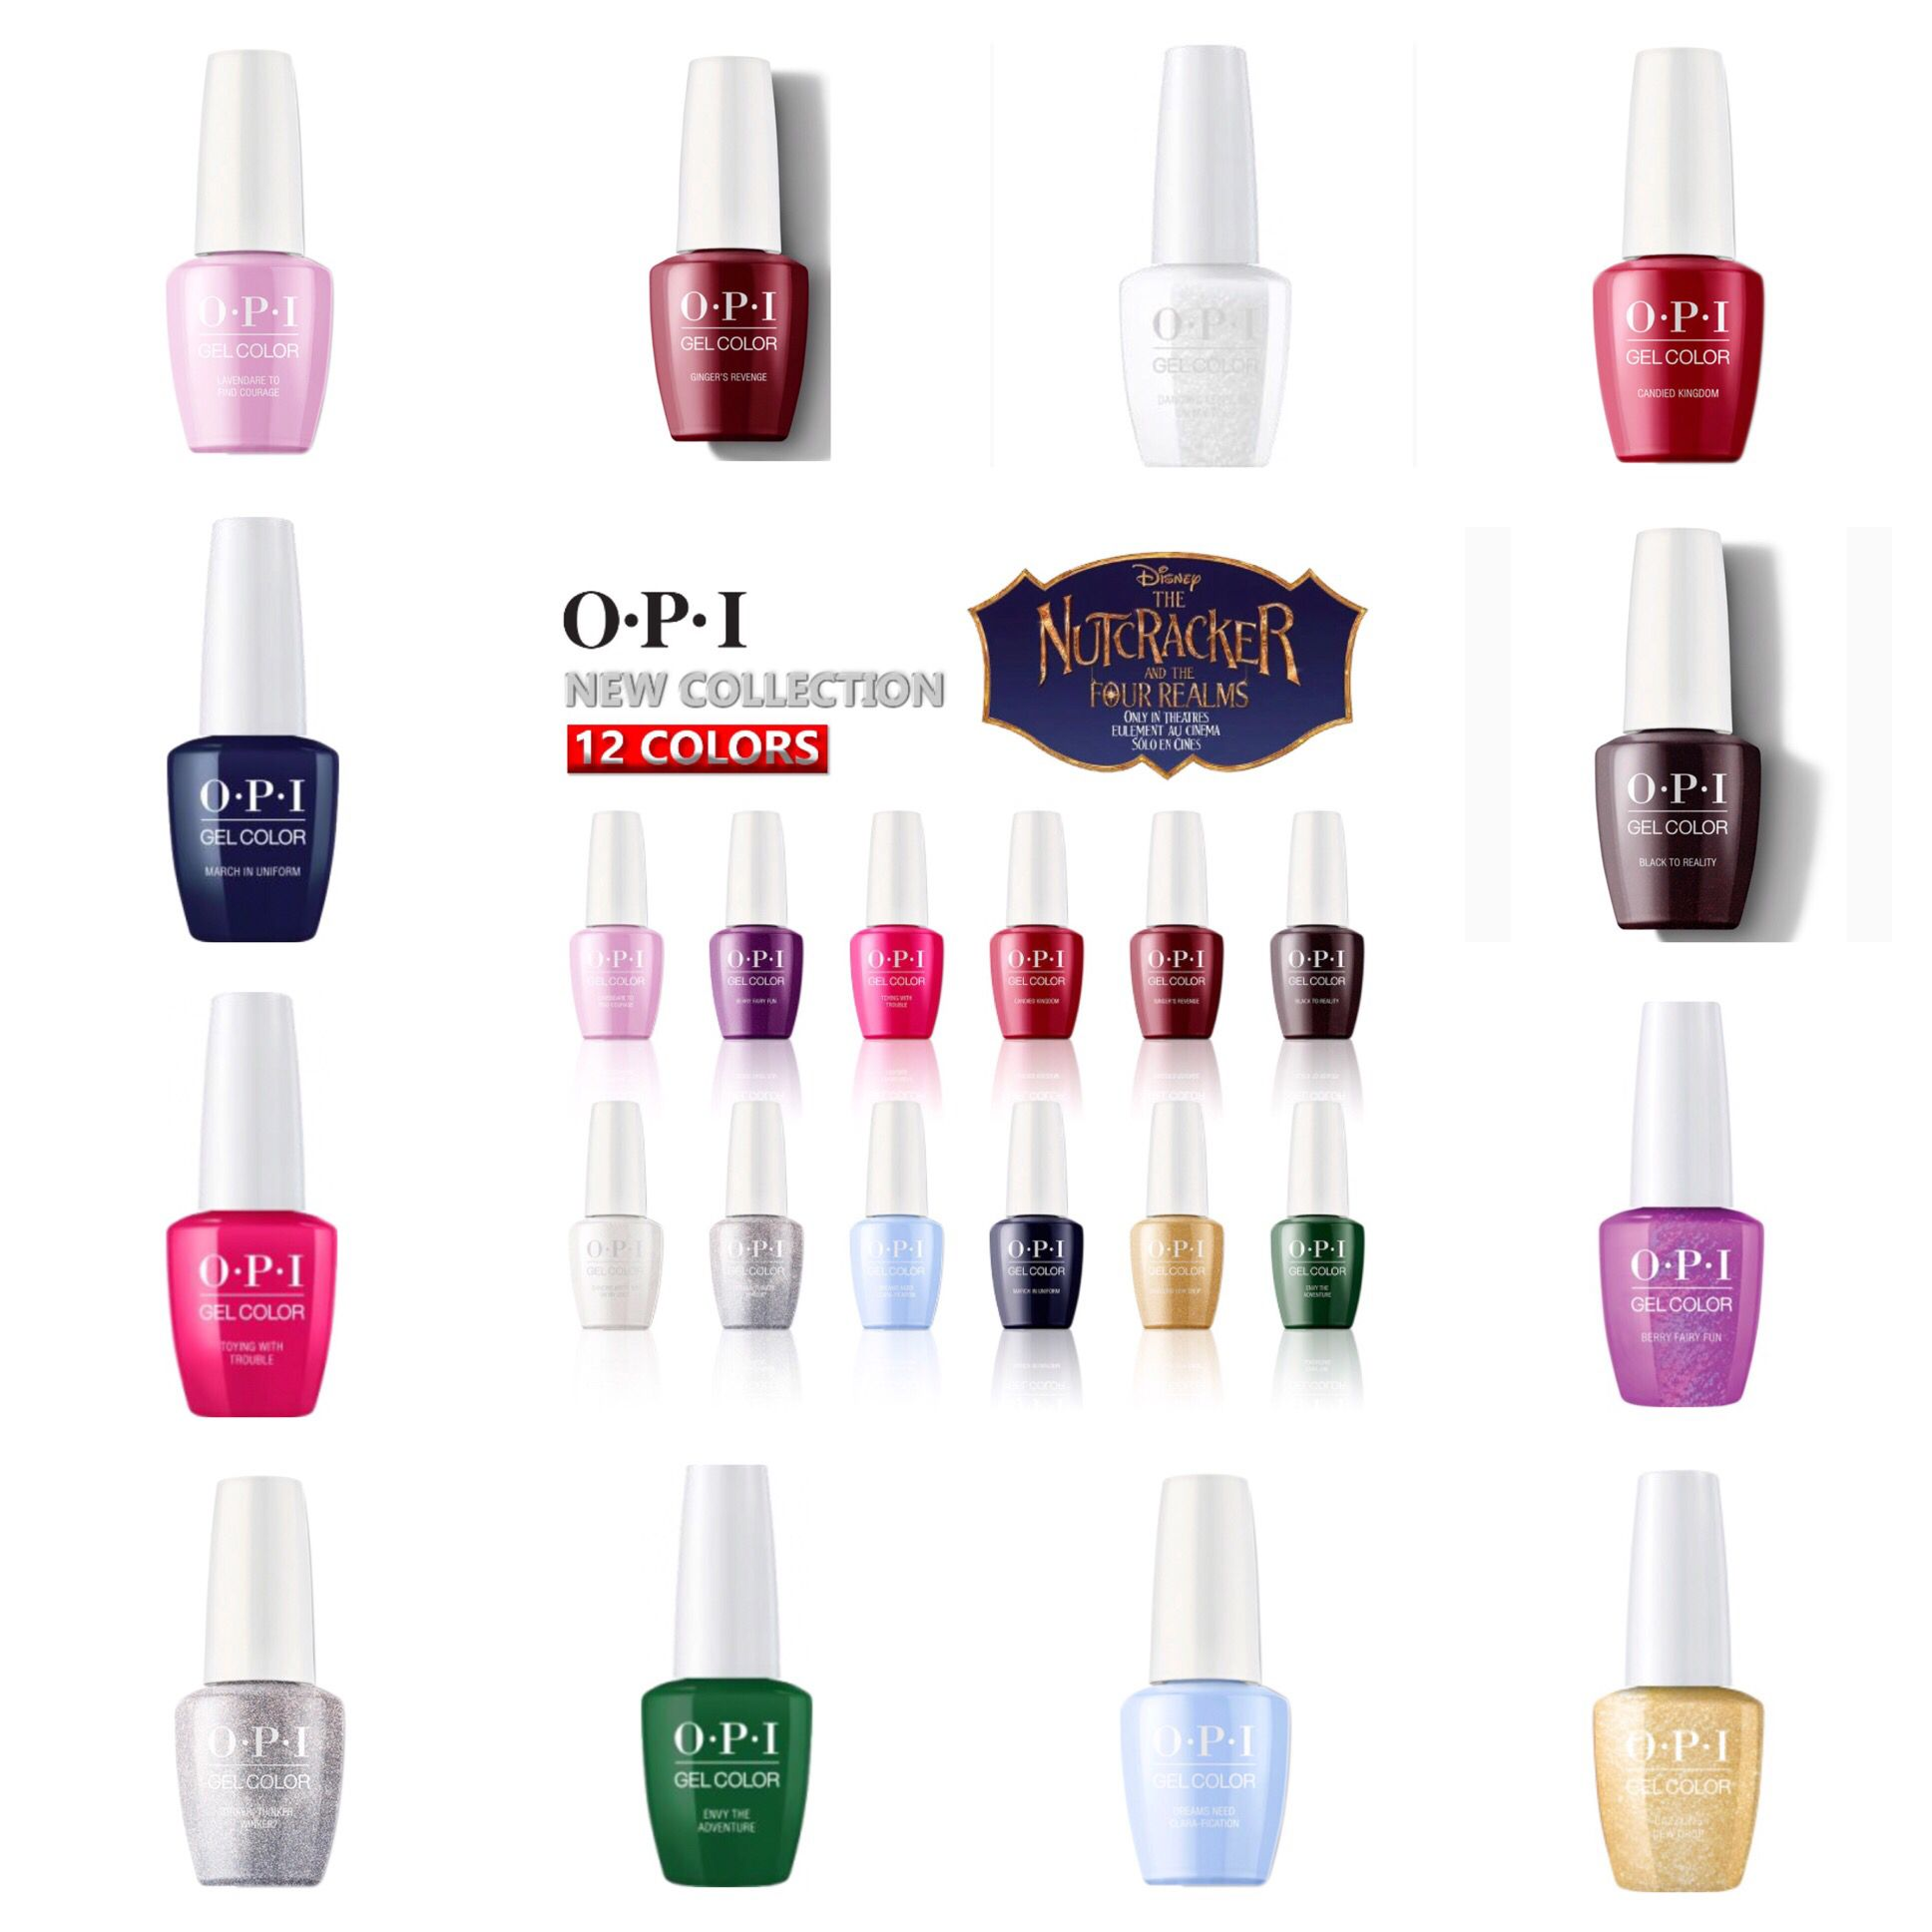 Opi The Nutcracker And The Four Realms Opi Gelcolor Soak Off Gel Polish The Nutcracker And The Four Realms Collection Opi Gelcolor Gel Color Opi Gel